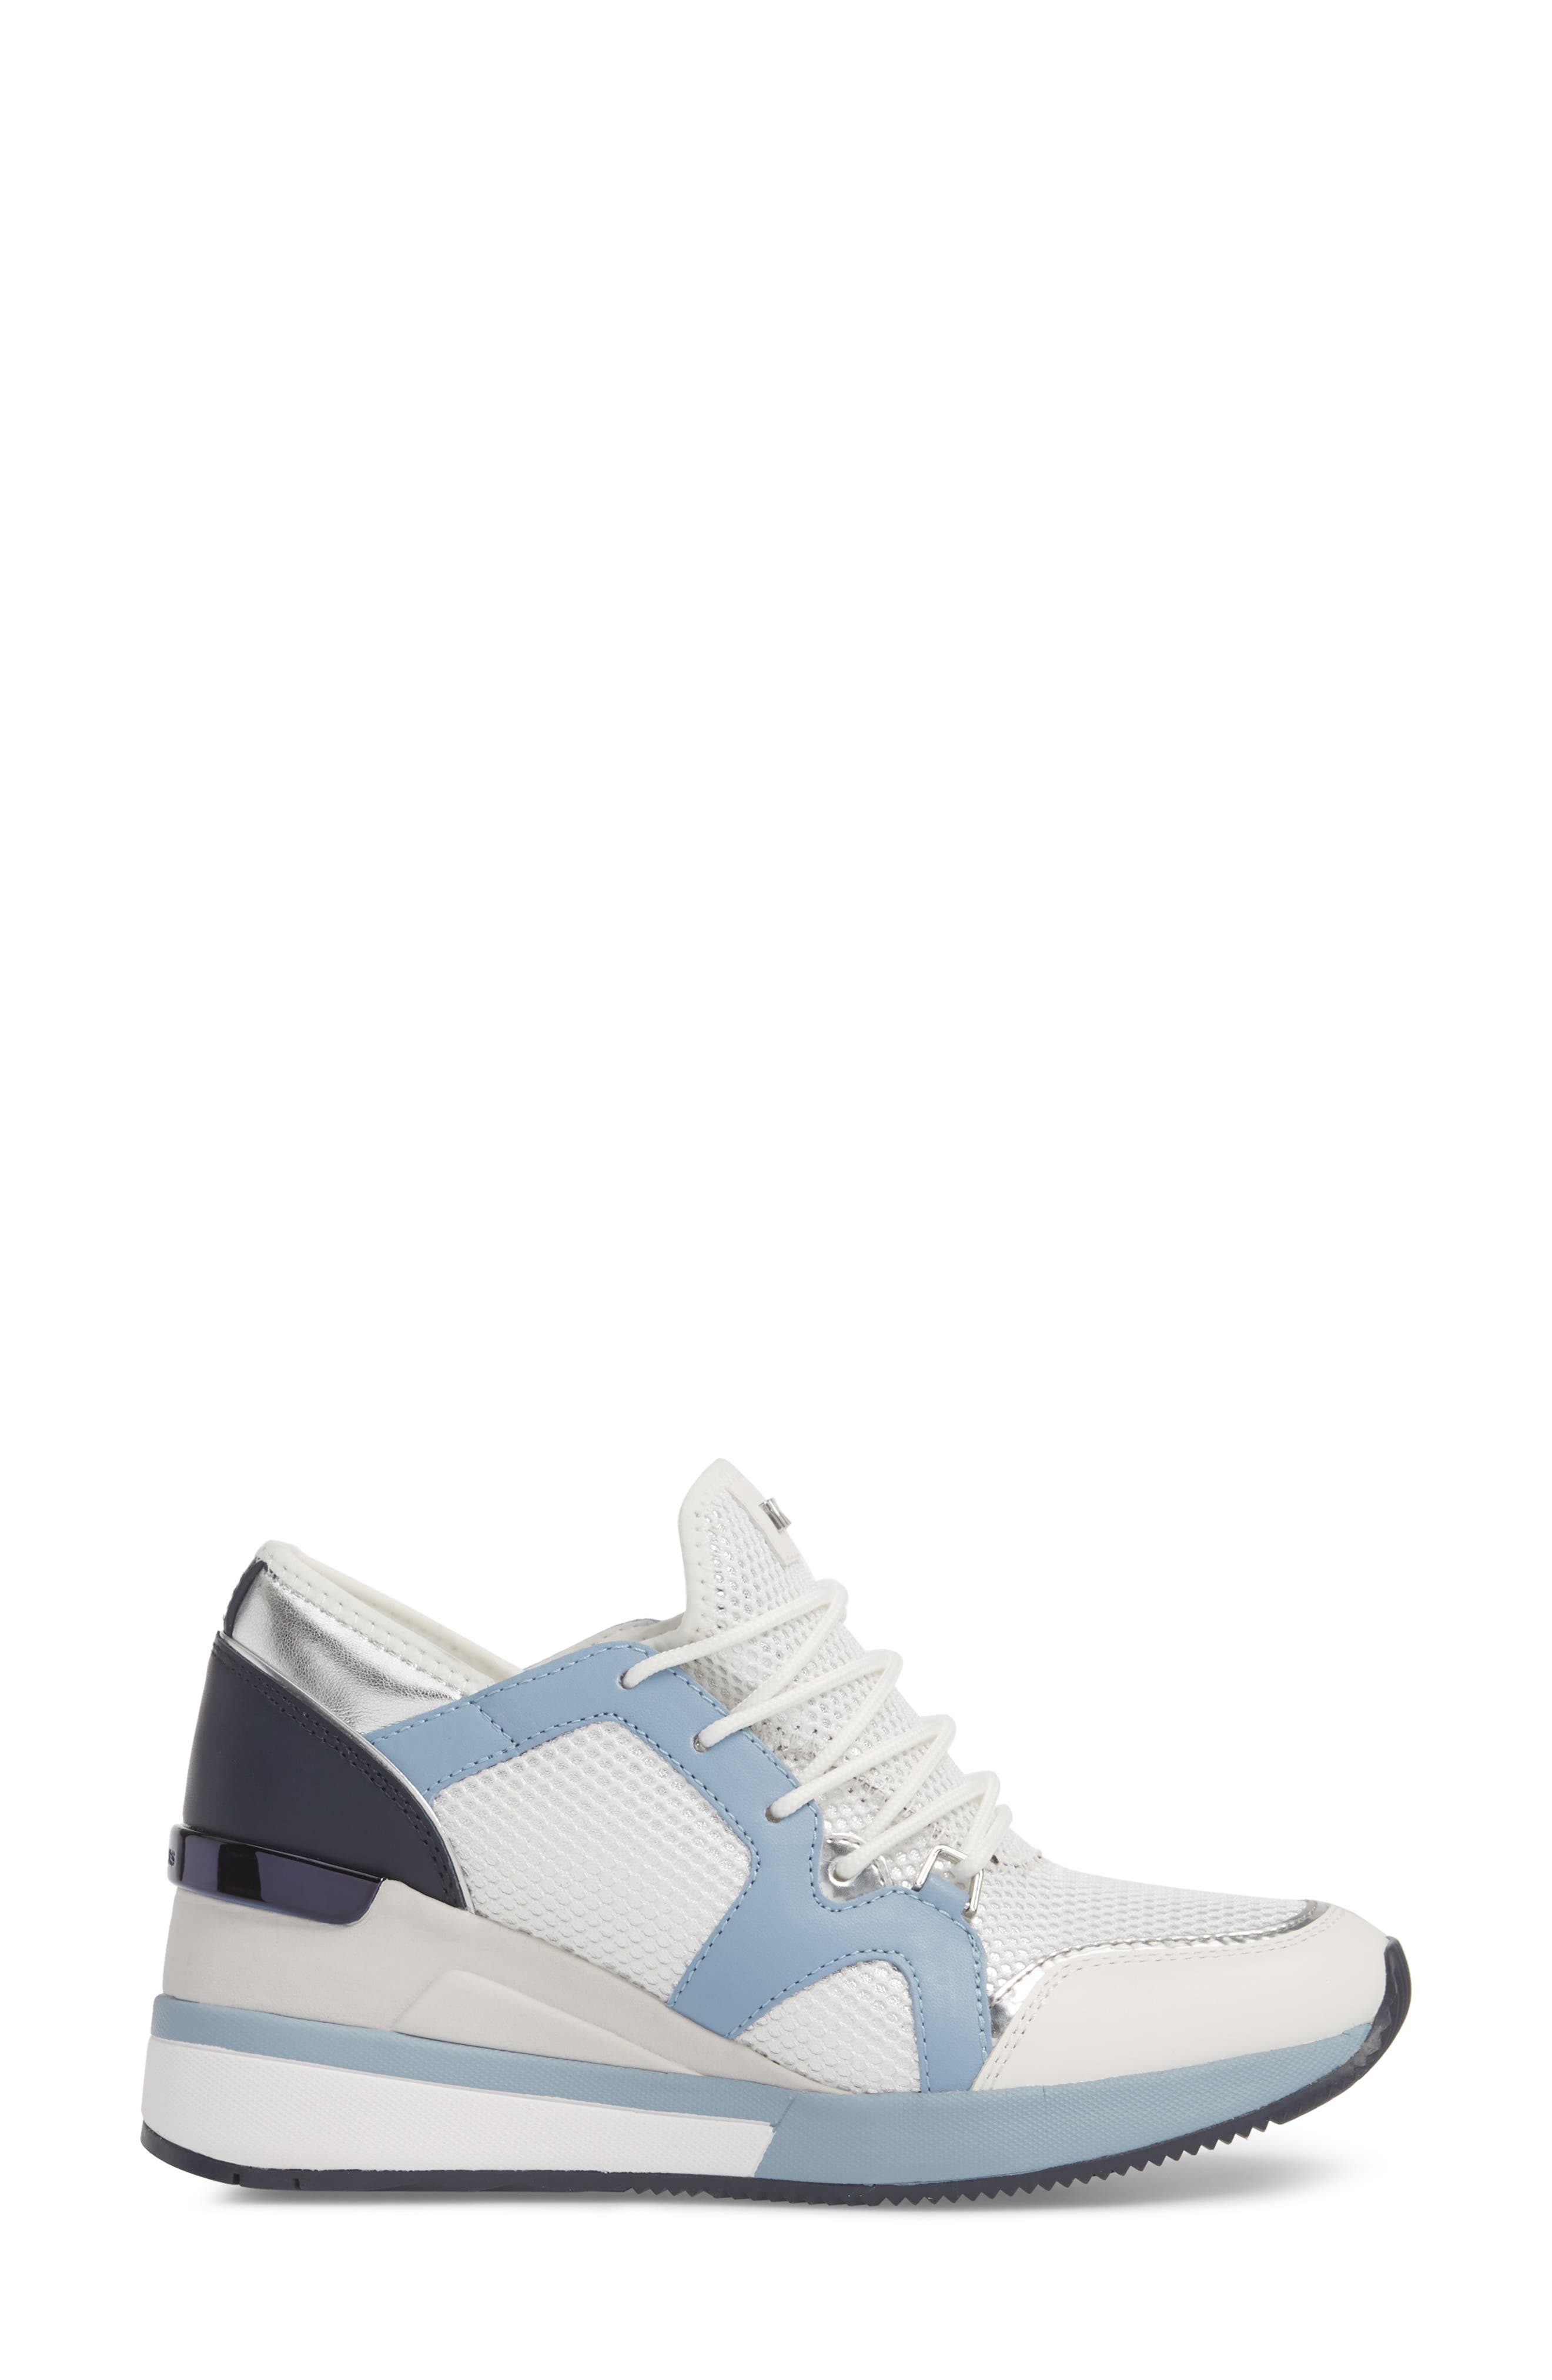 Scout Wedge Sneaker,                             Alternate thumbnail 3, color,                             Optic White/Blue